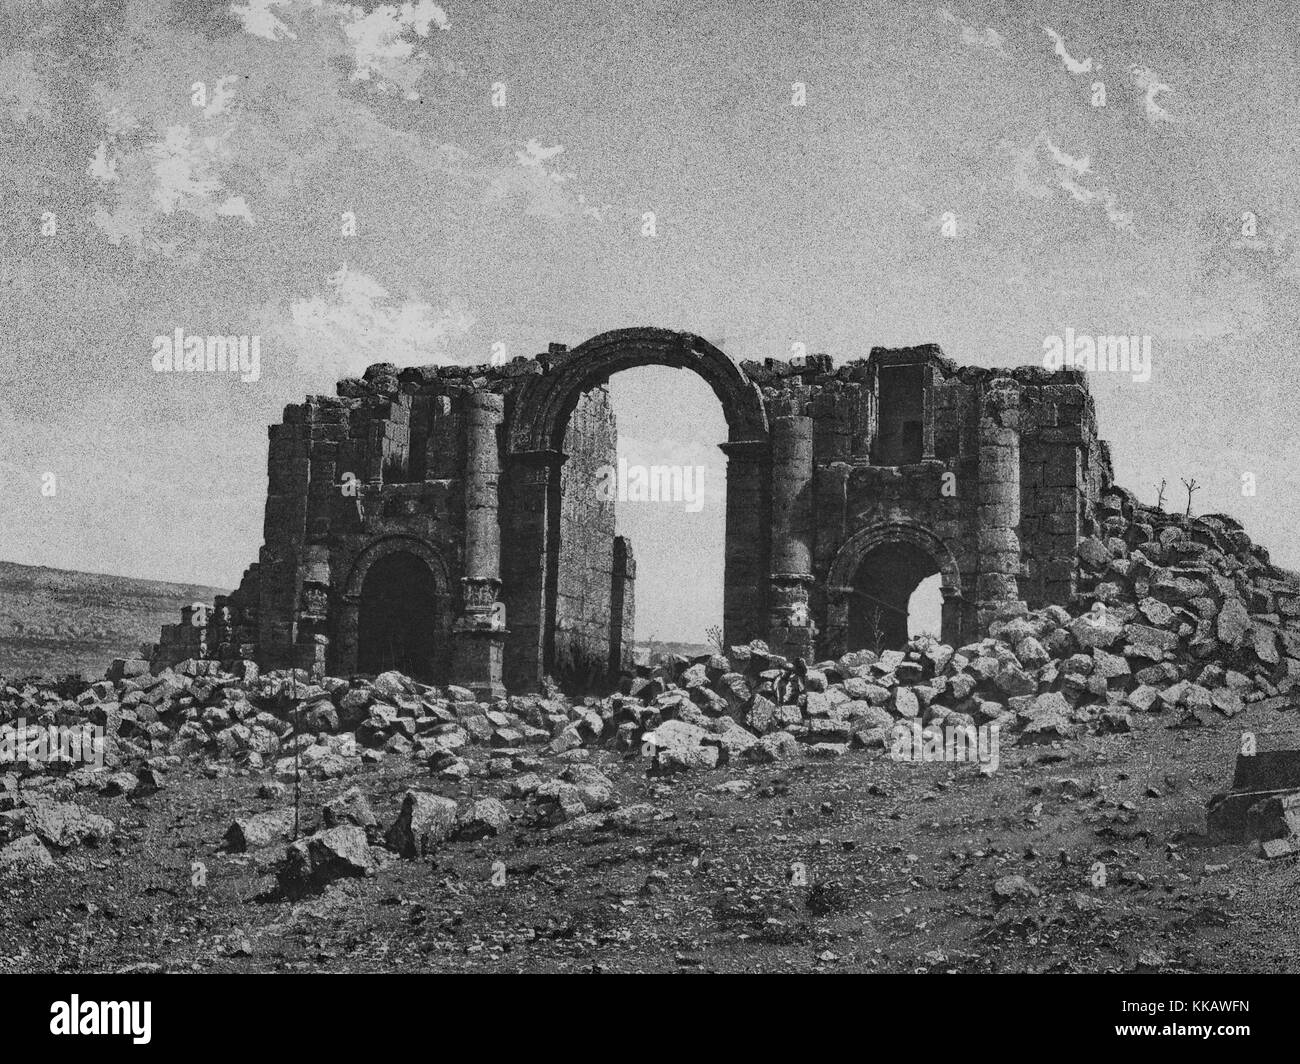 The ruins of the Roman portion of the city of Jerash, portions of a stone structure and an archway are still standing - Stock Image